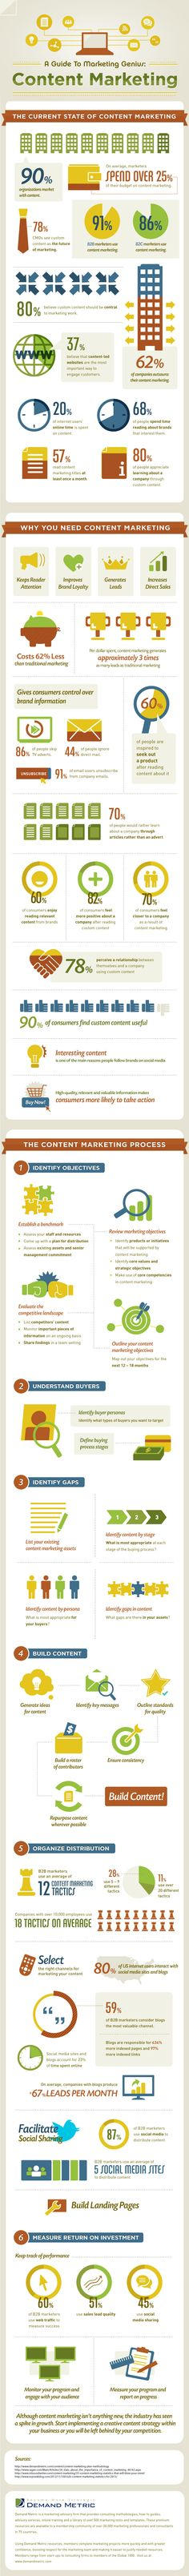 Infographics: Guide to Content Marketing - Dendrite Park